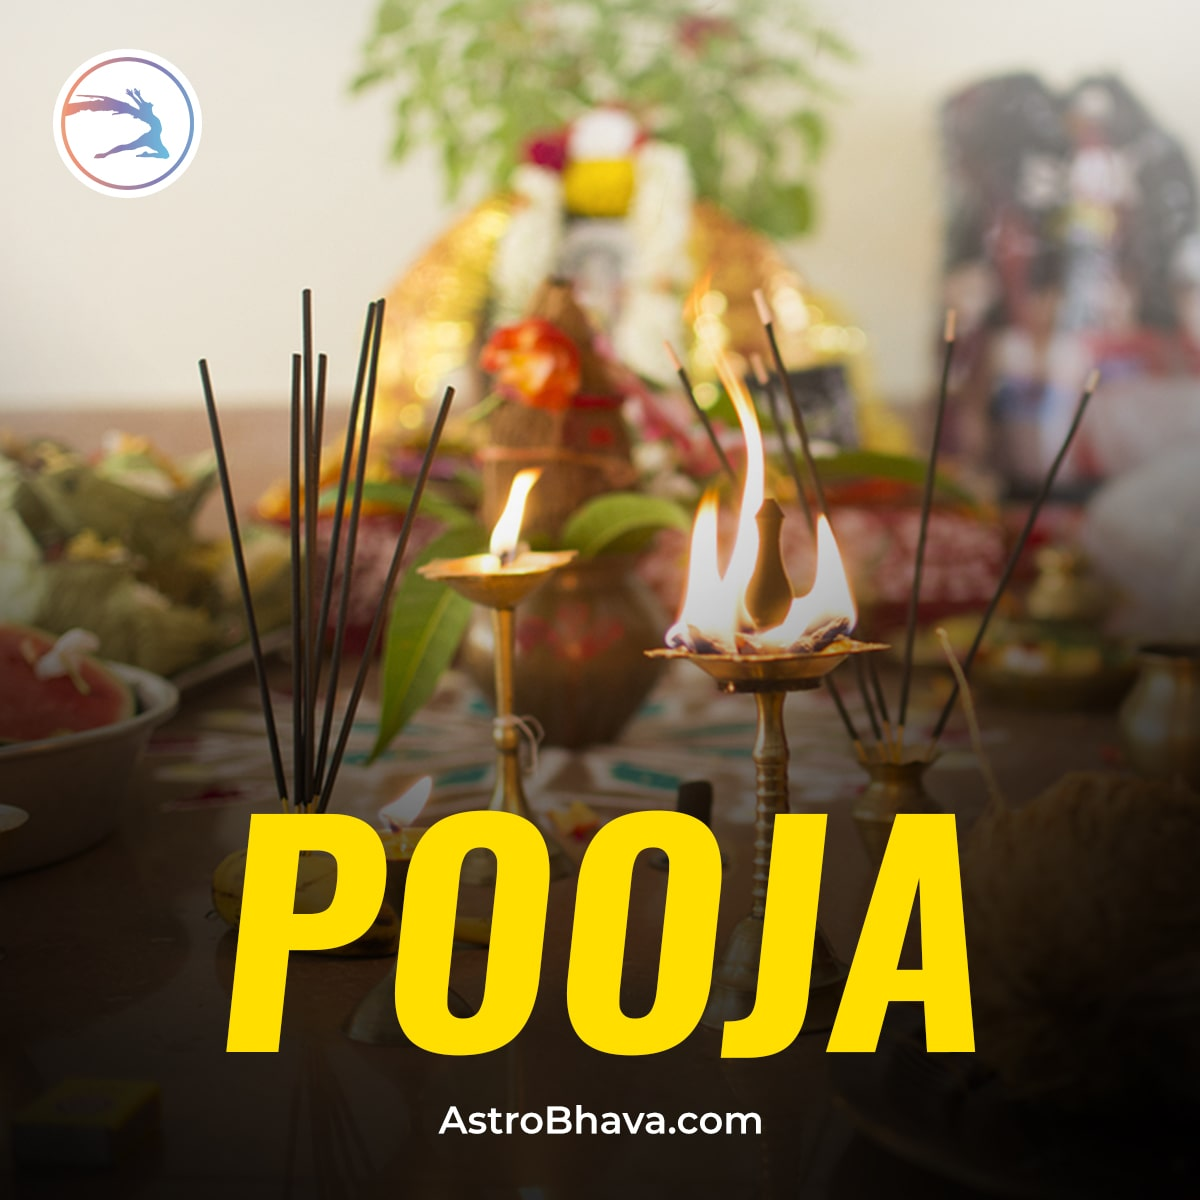 Book Online Pooja at AstroBhava and Get Remedies for all Life Issues